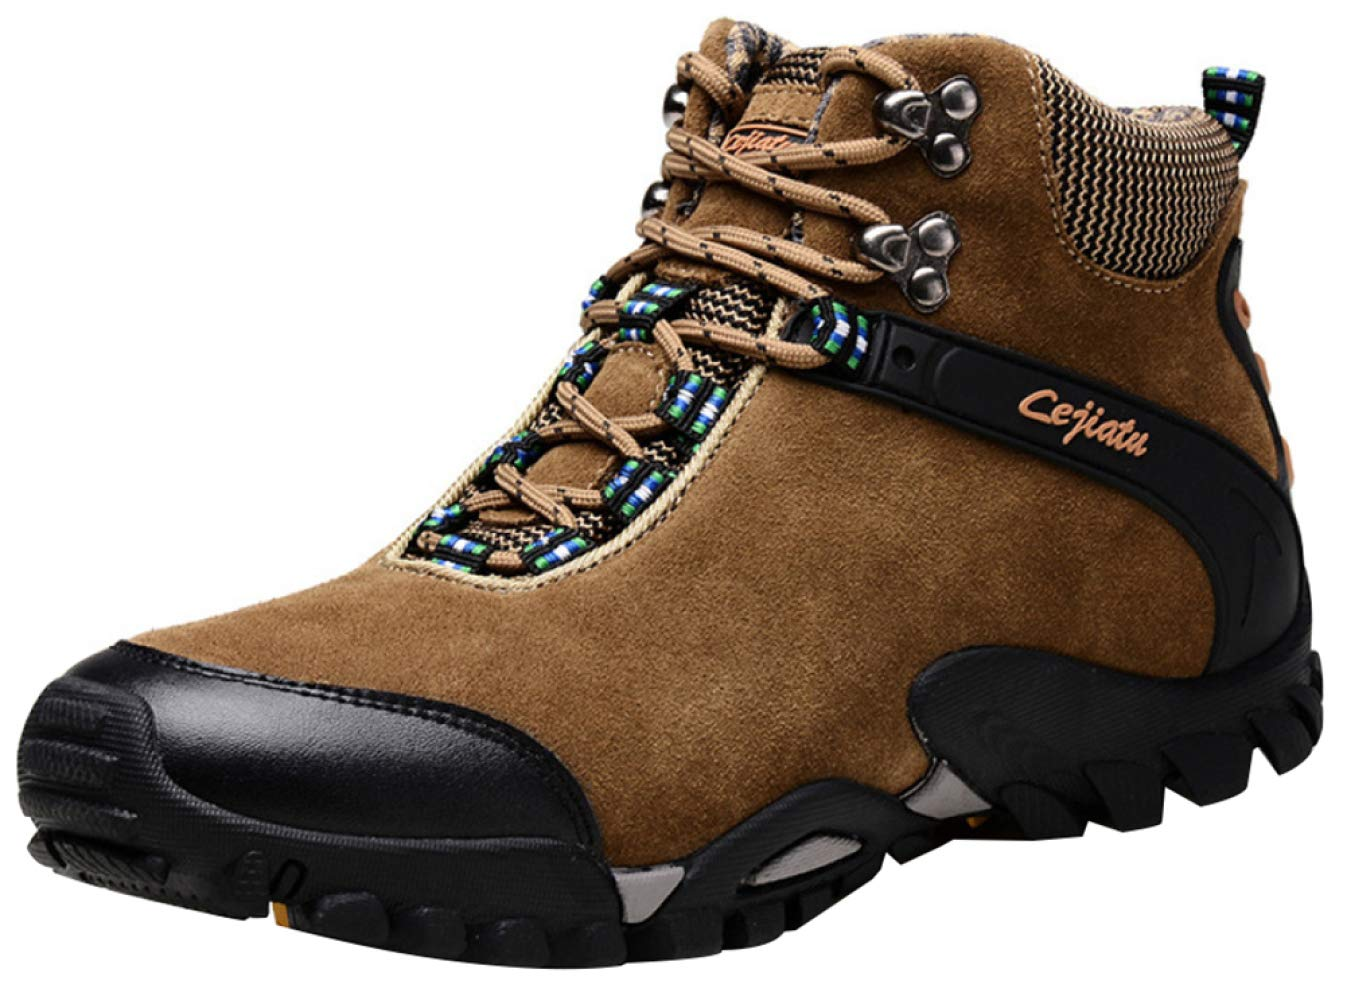 Khaki1 RSHENG shoes Boots For Men's Warm Lining Hiking Boots Outdoor Leisure Lightweight High-top Cotton shoes